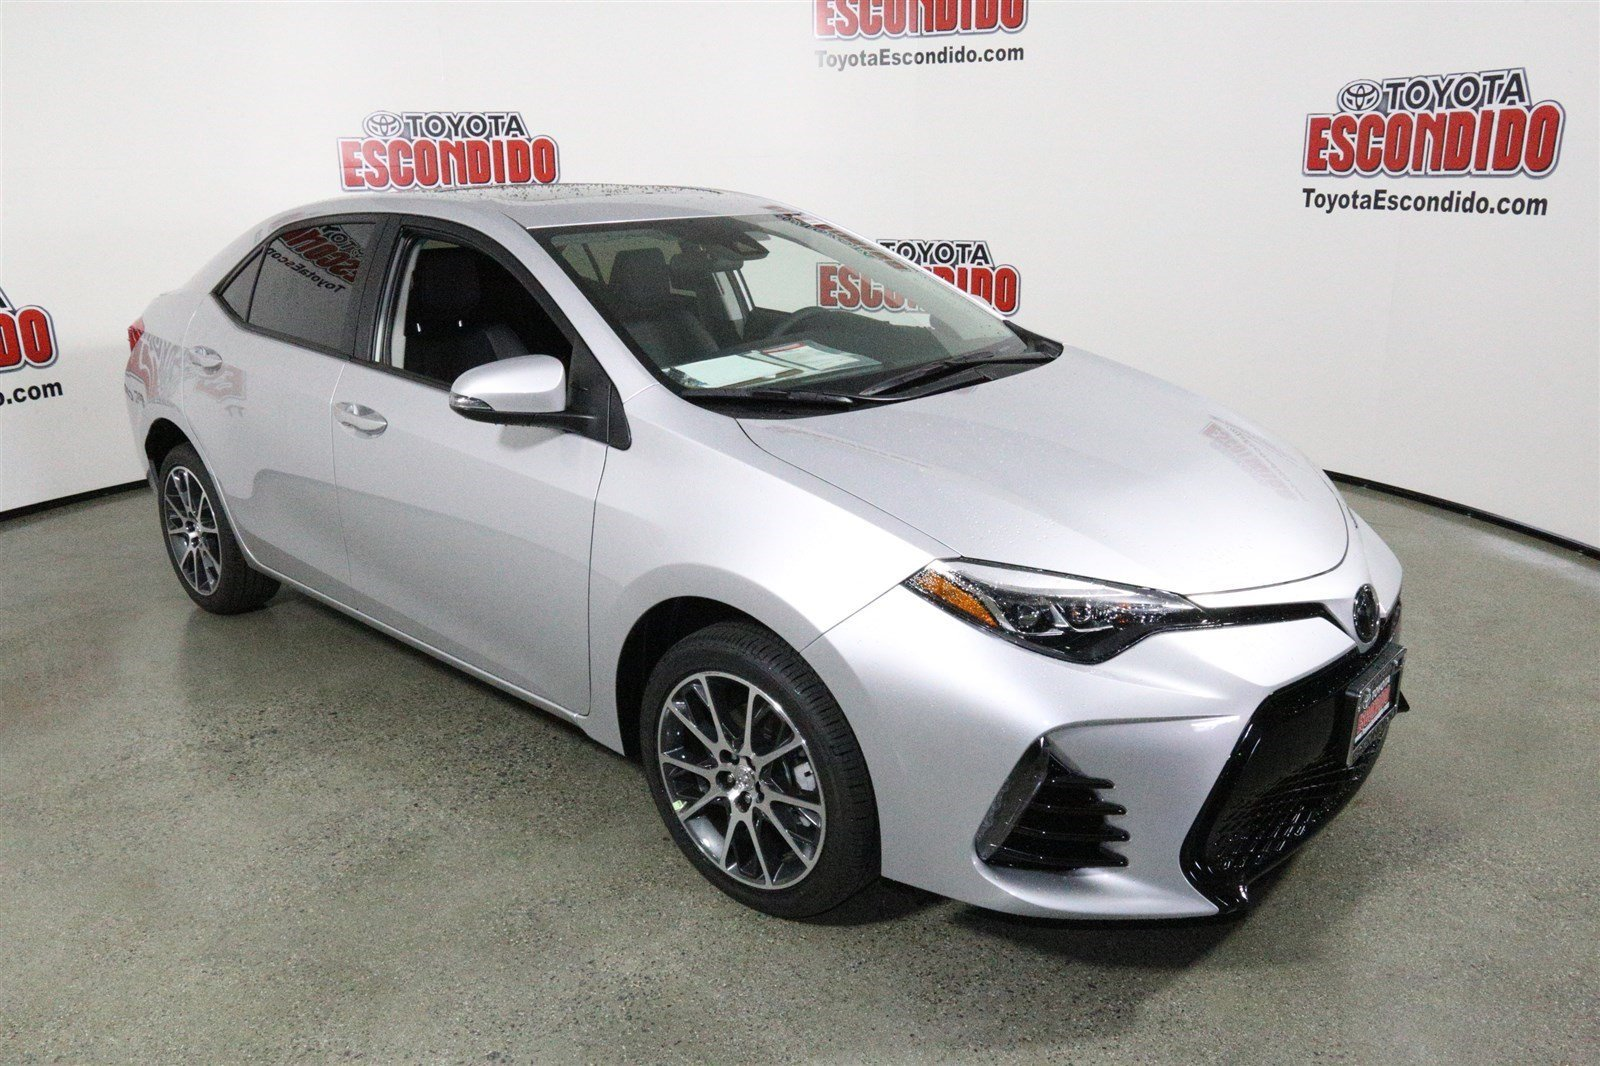 new 2017 toyota corolla 50th anniversary special edition 4dr car in escondido hp596338 toyota. Black Bedroom Furniture Sets. Home Design Ideas